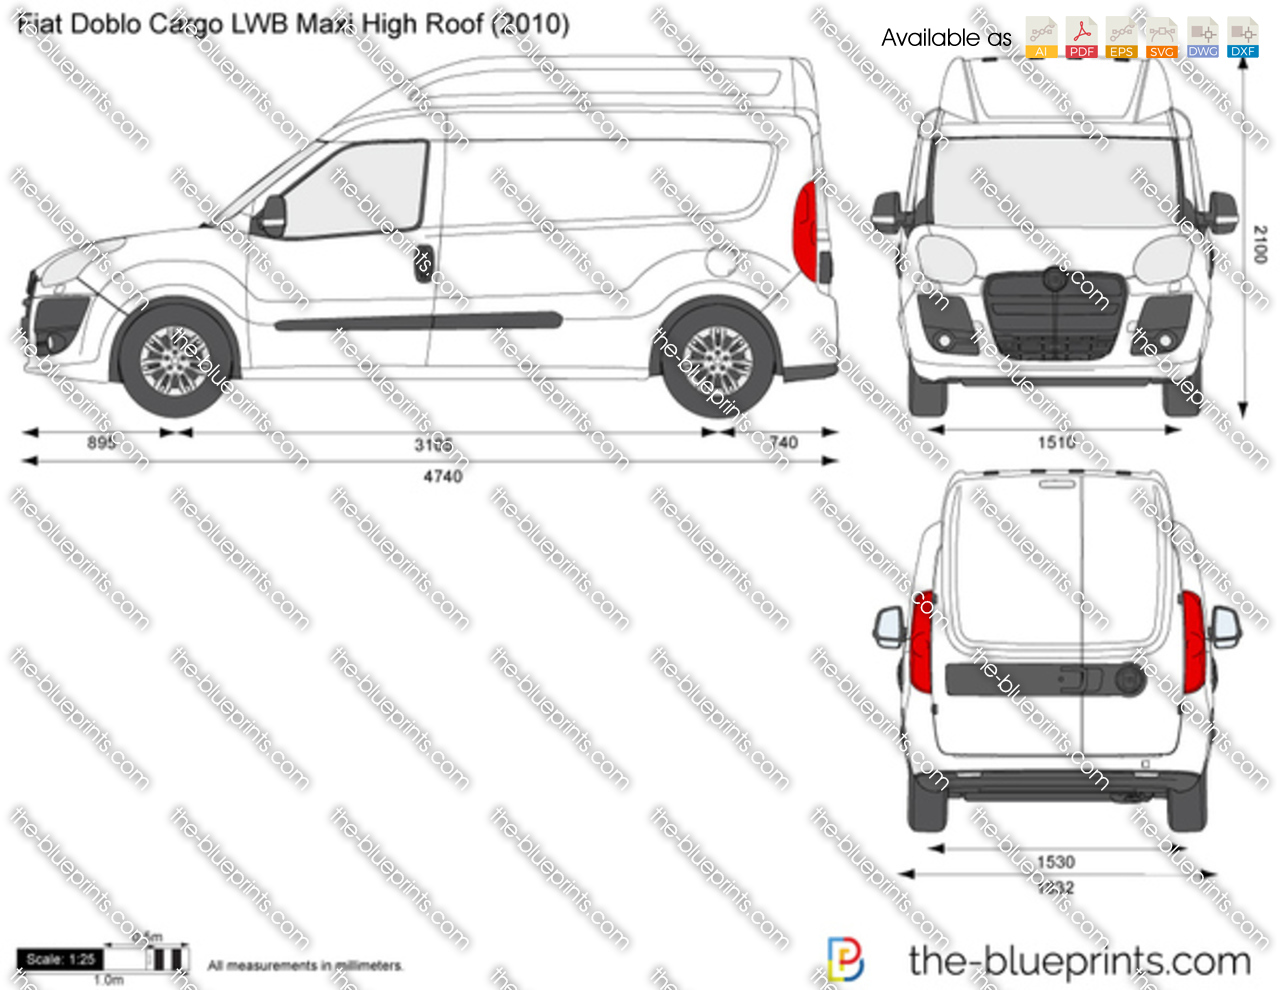 the vector drawing fiat doblo cargo lwb maxi high roof. Black Bedroom Furniture Sets. Home Design Ideas